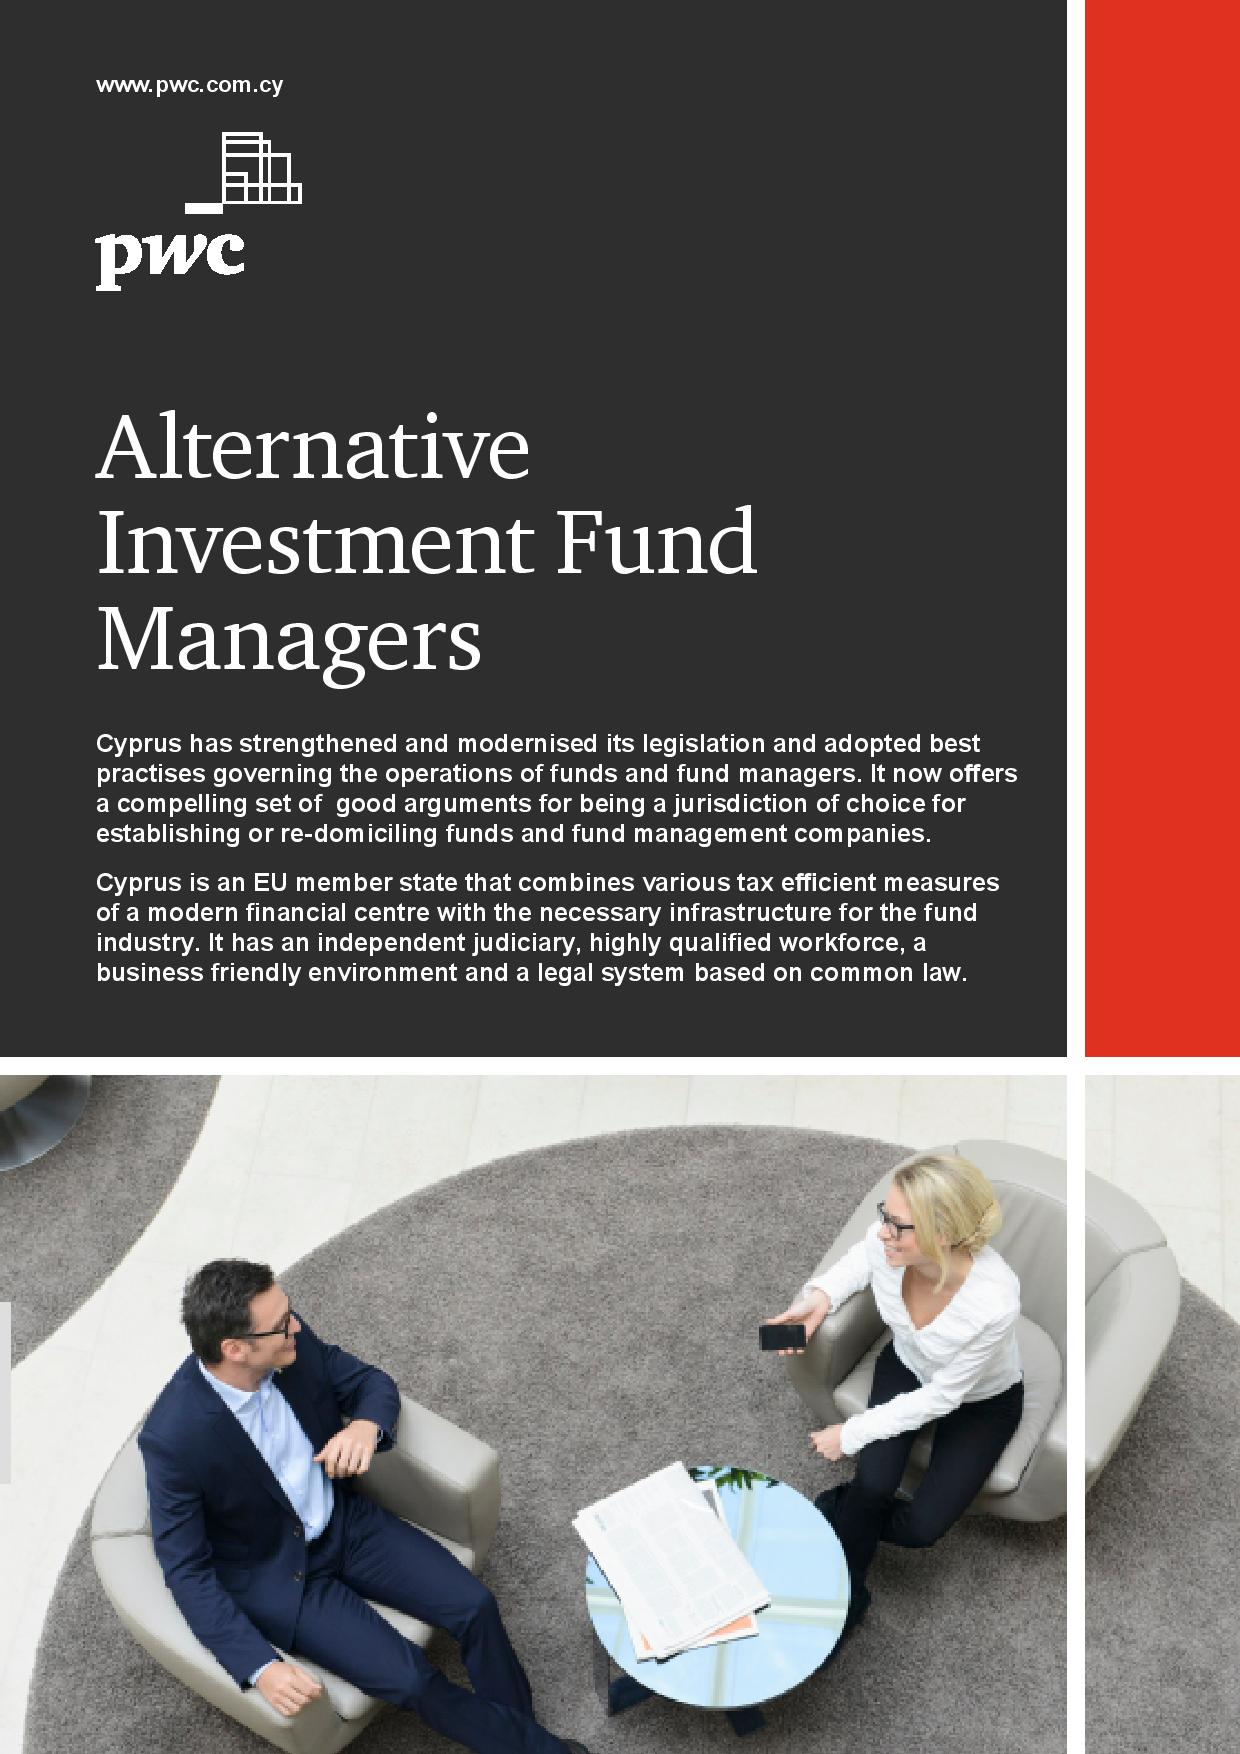 PwC: Alternative Investment Fund Managers